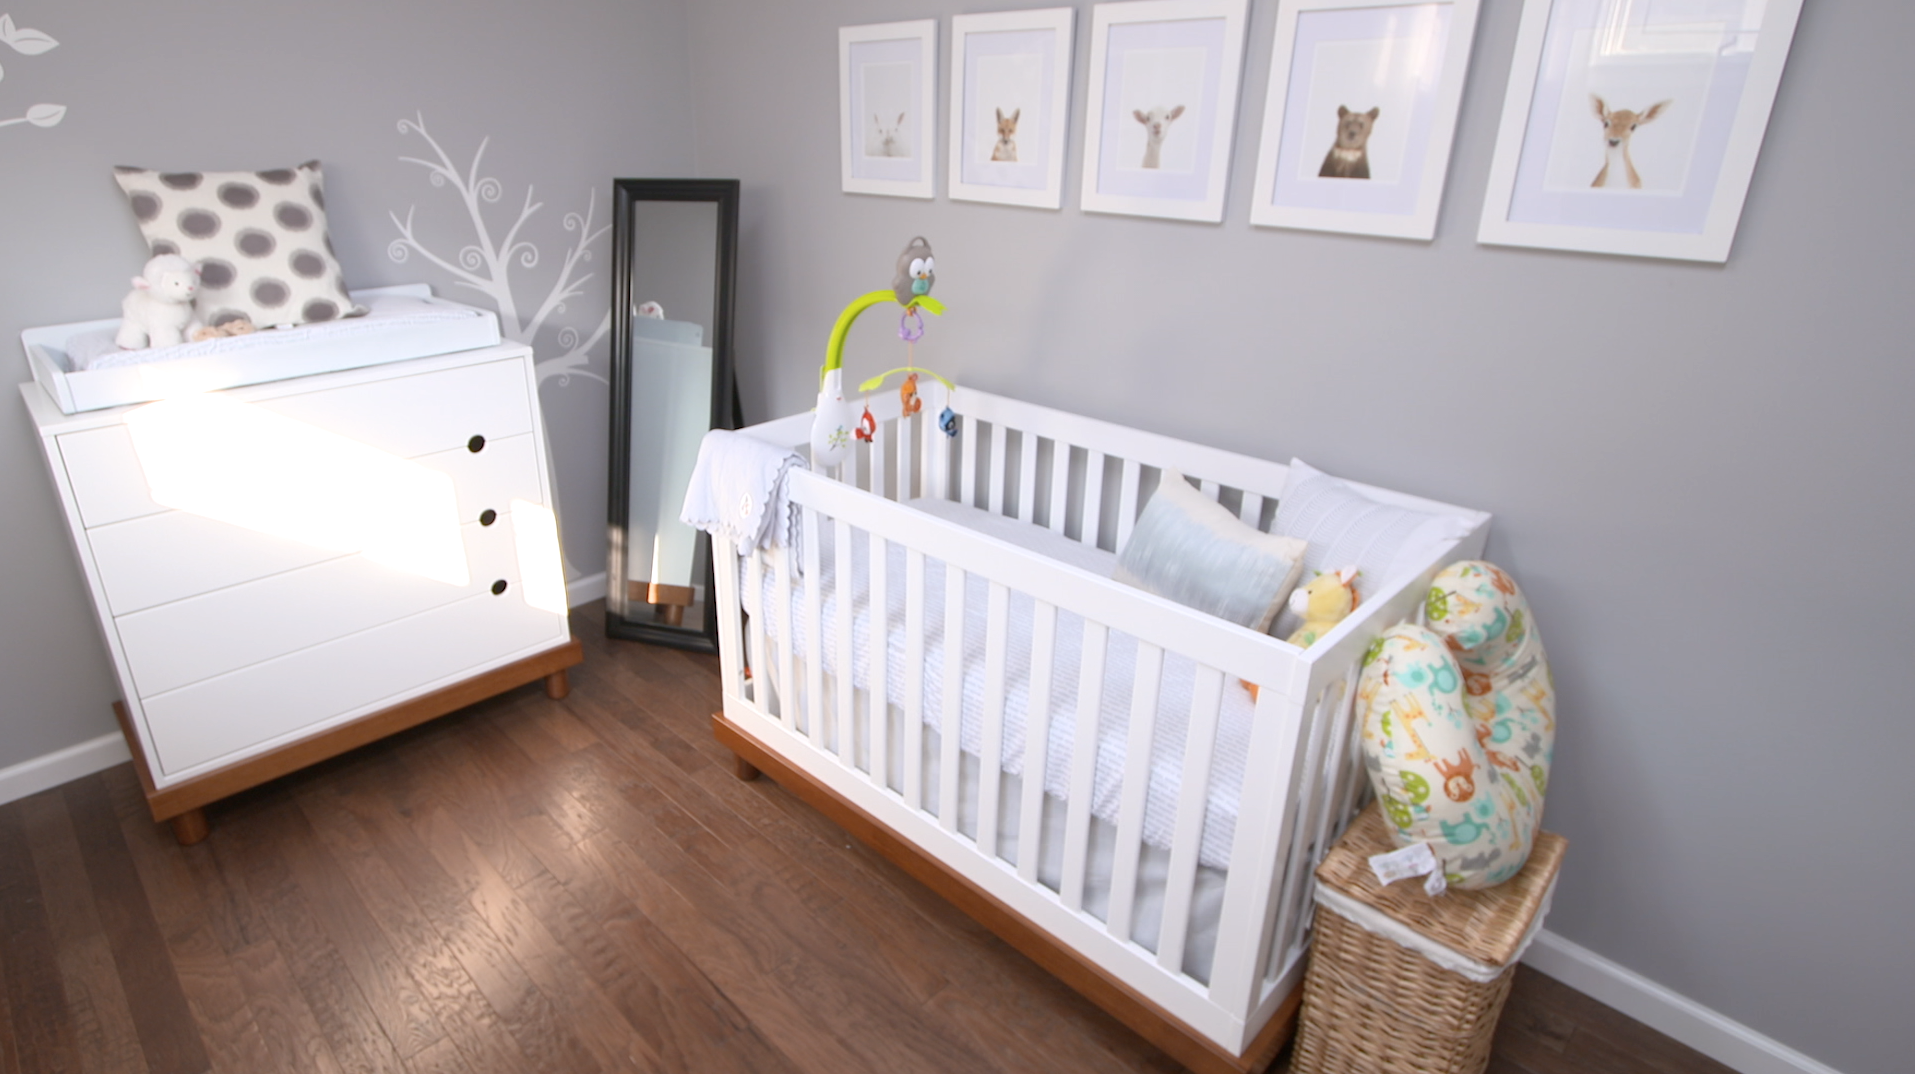 Must see before and after nursery makeover video for Modern unisex nursery ideas